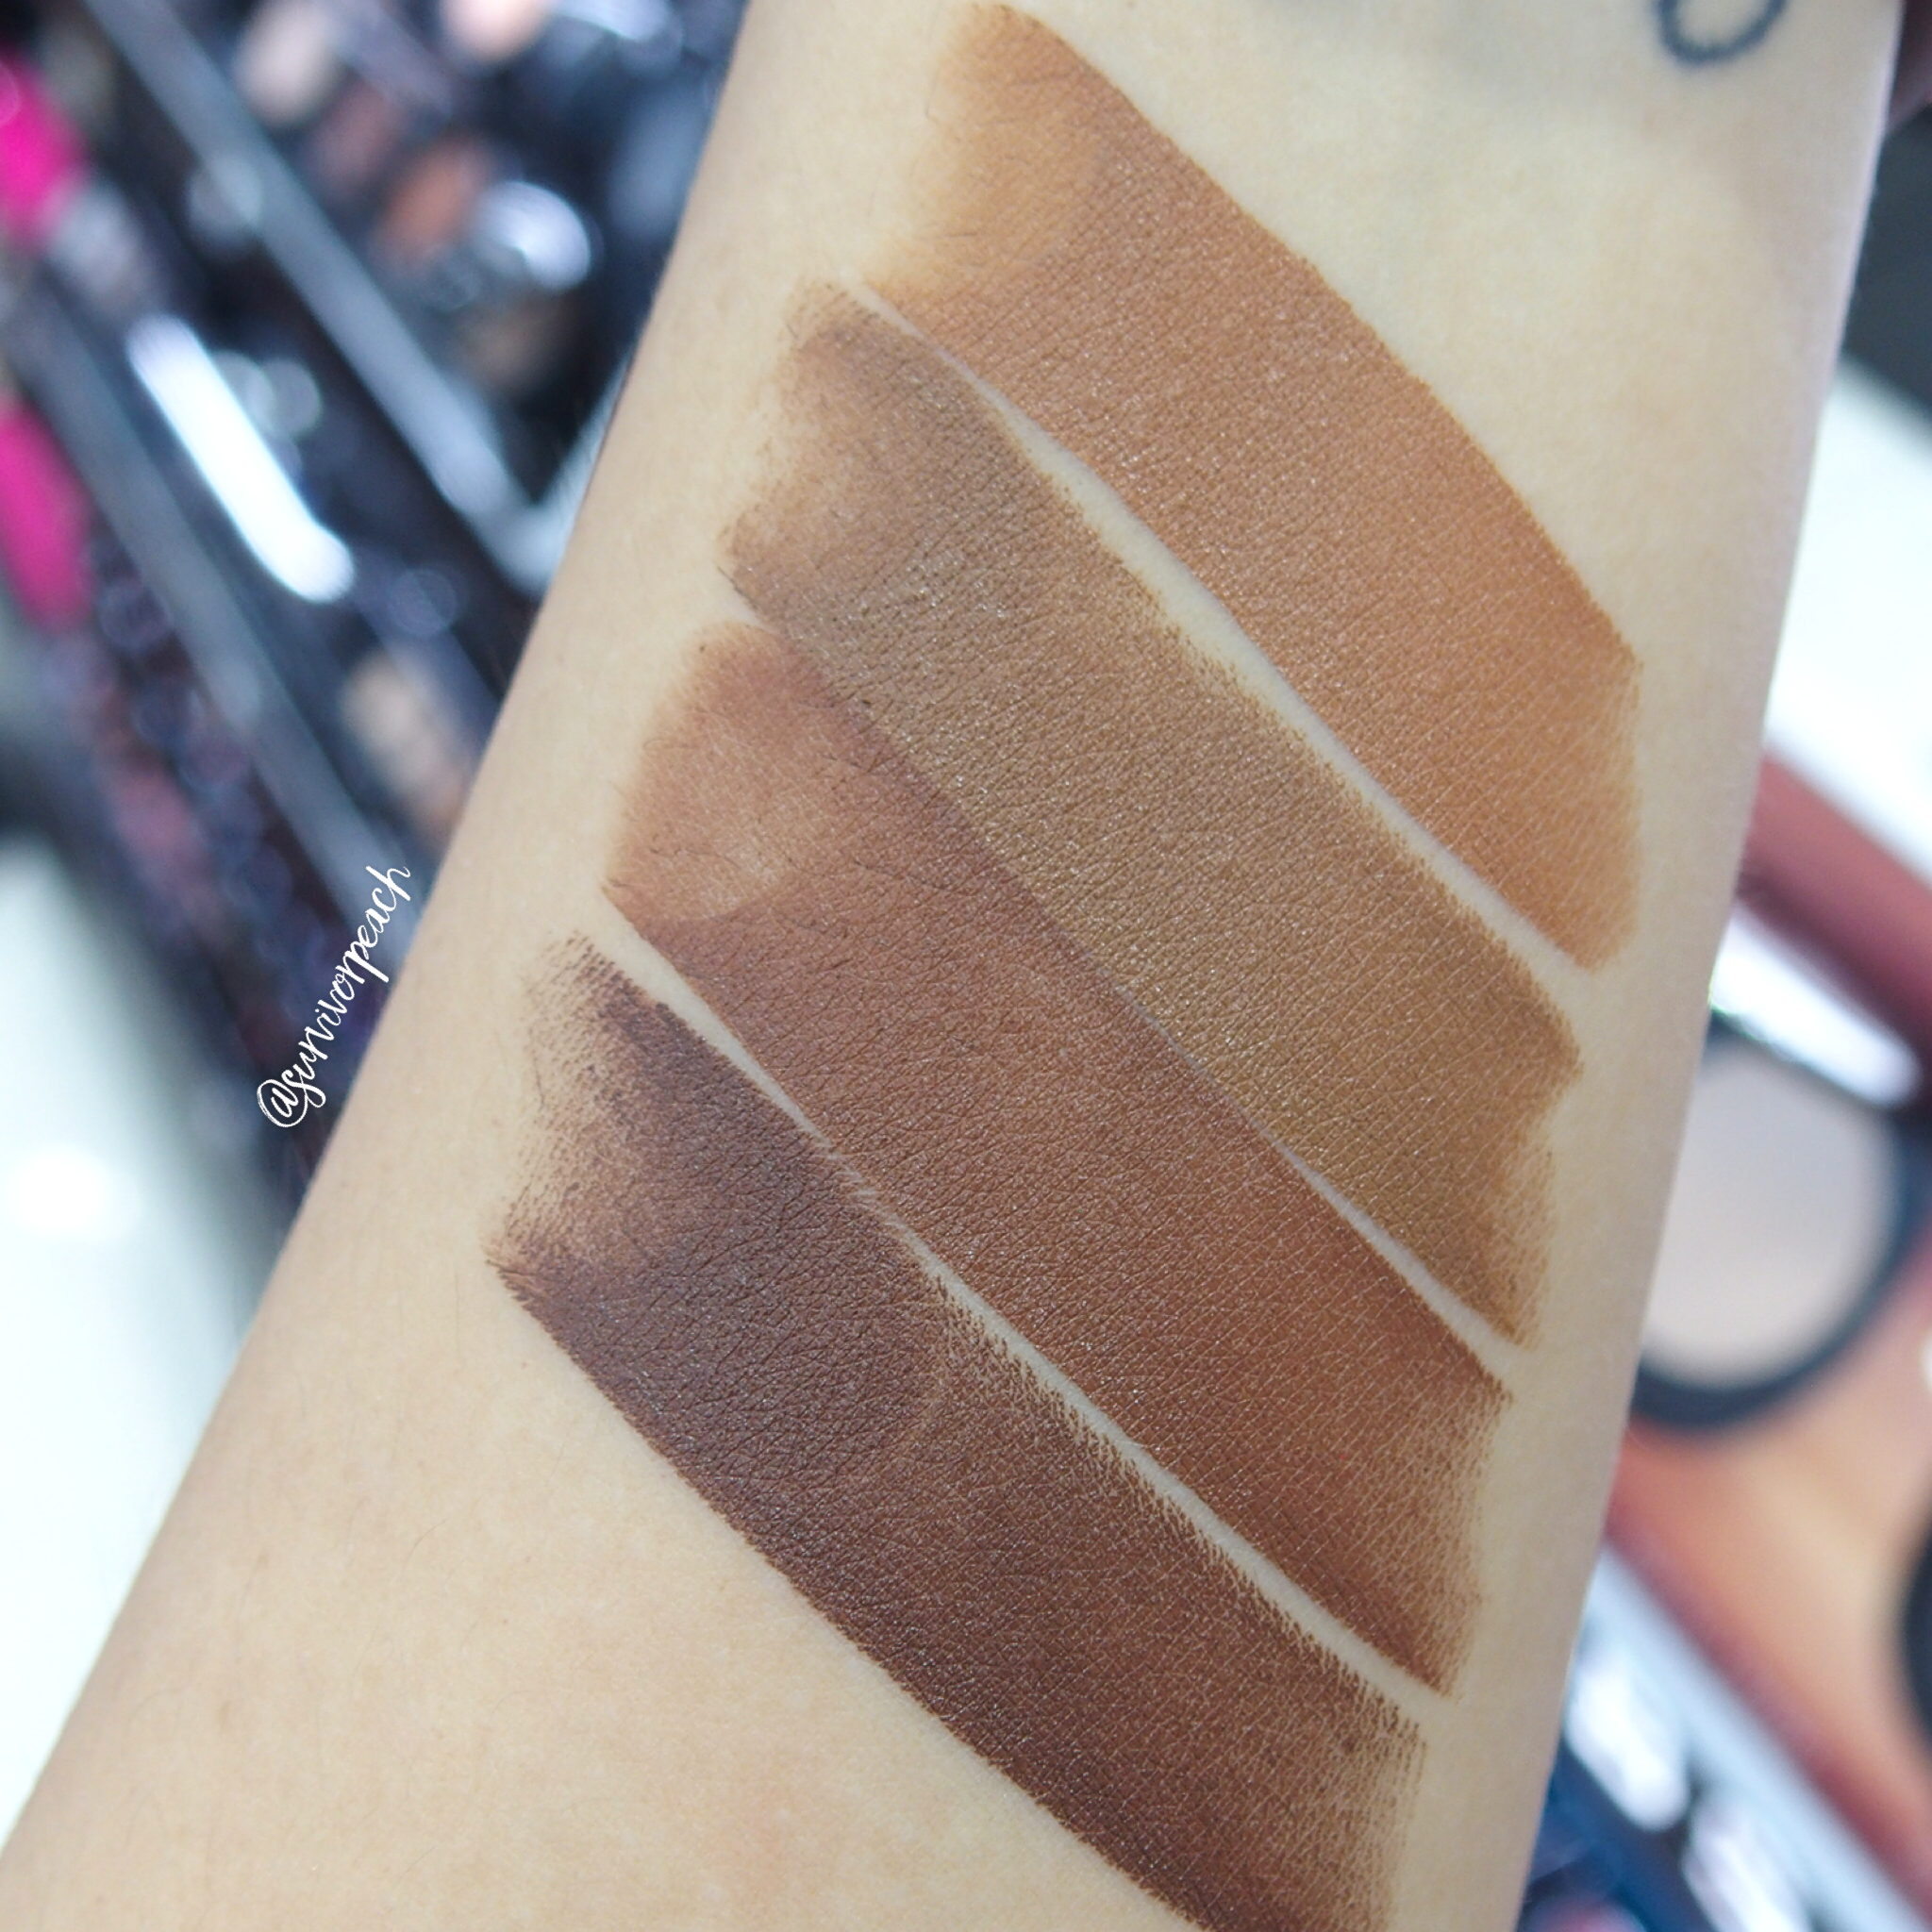 Marc Jacobs Accomplice Concealer & Touch Up Stick swatches - Deep